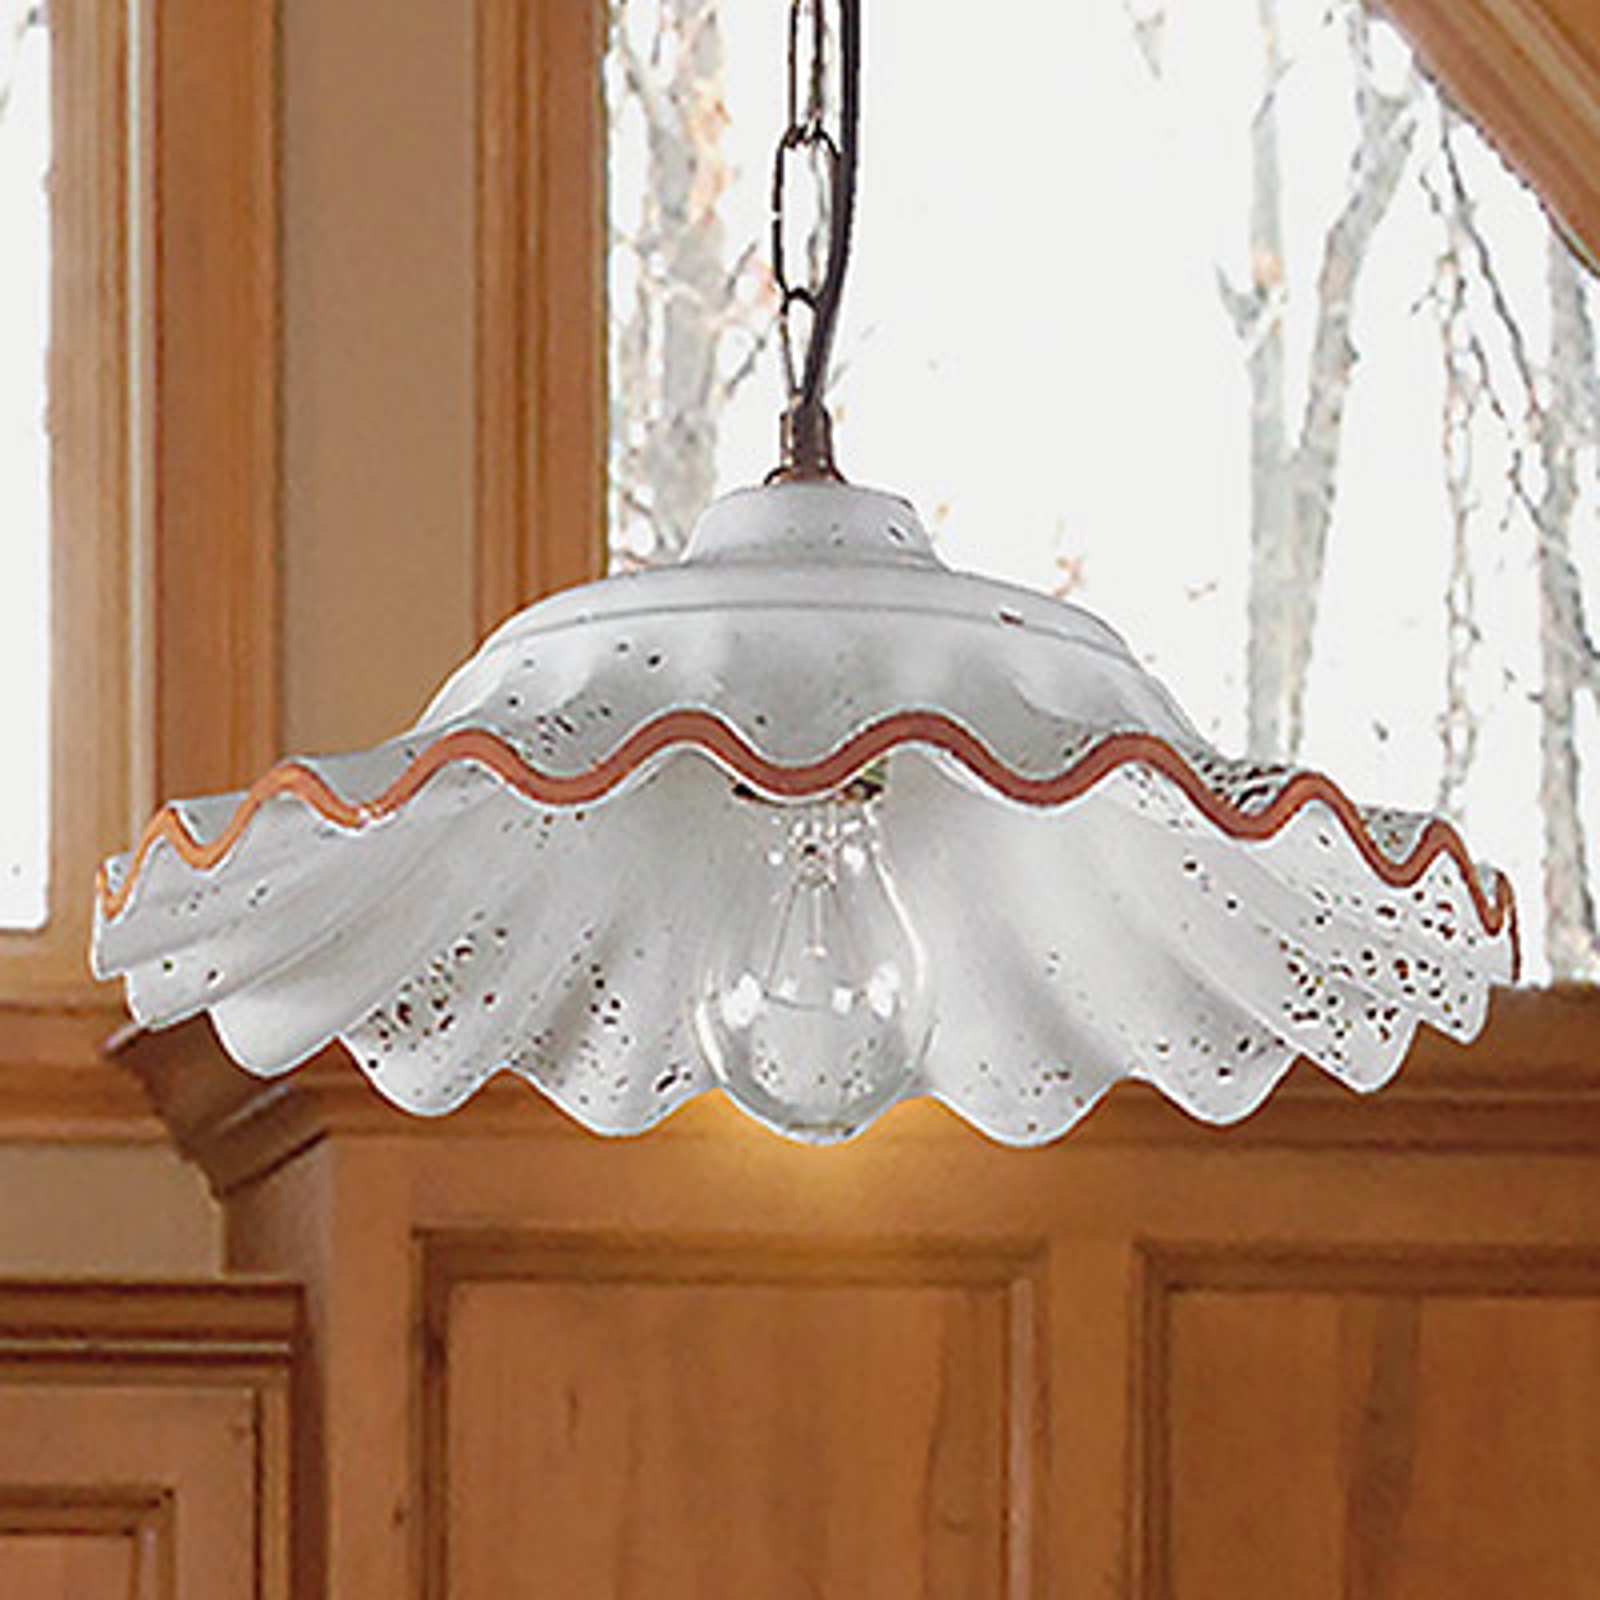 Tarlo hanging light with ceramic lampshade_3046070_1